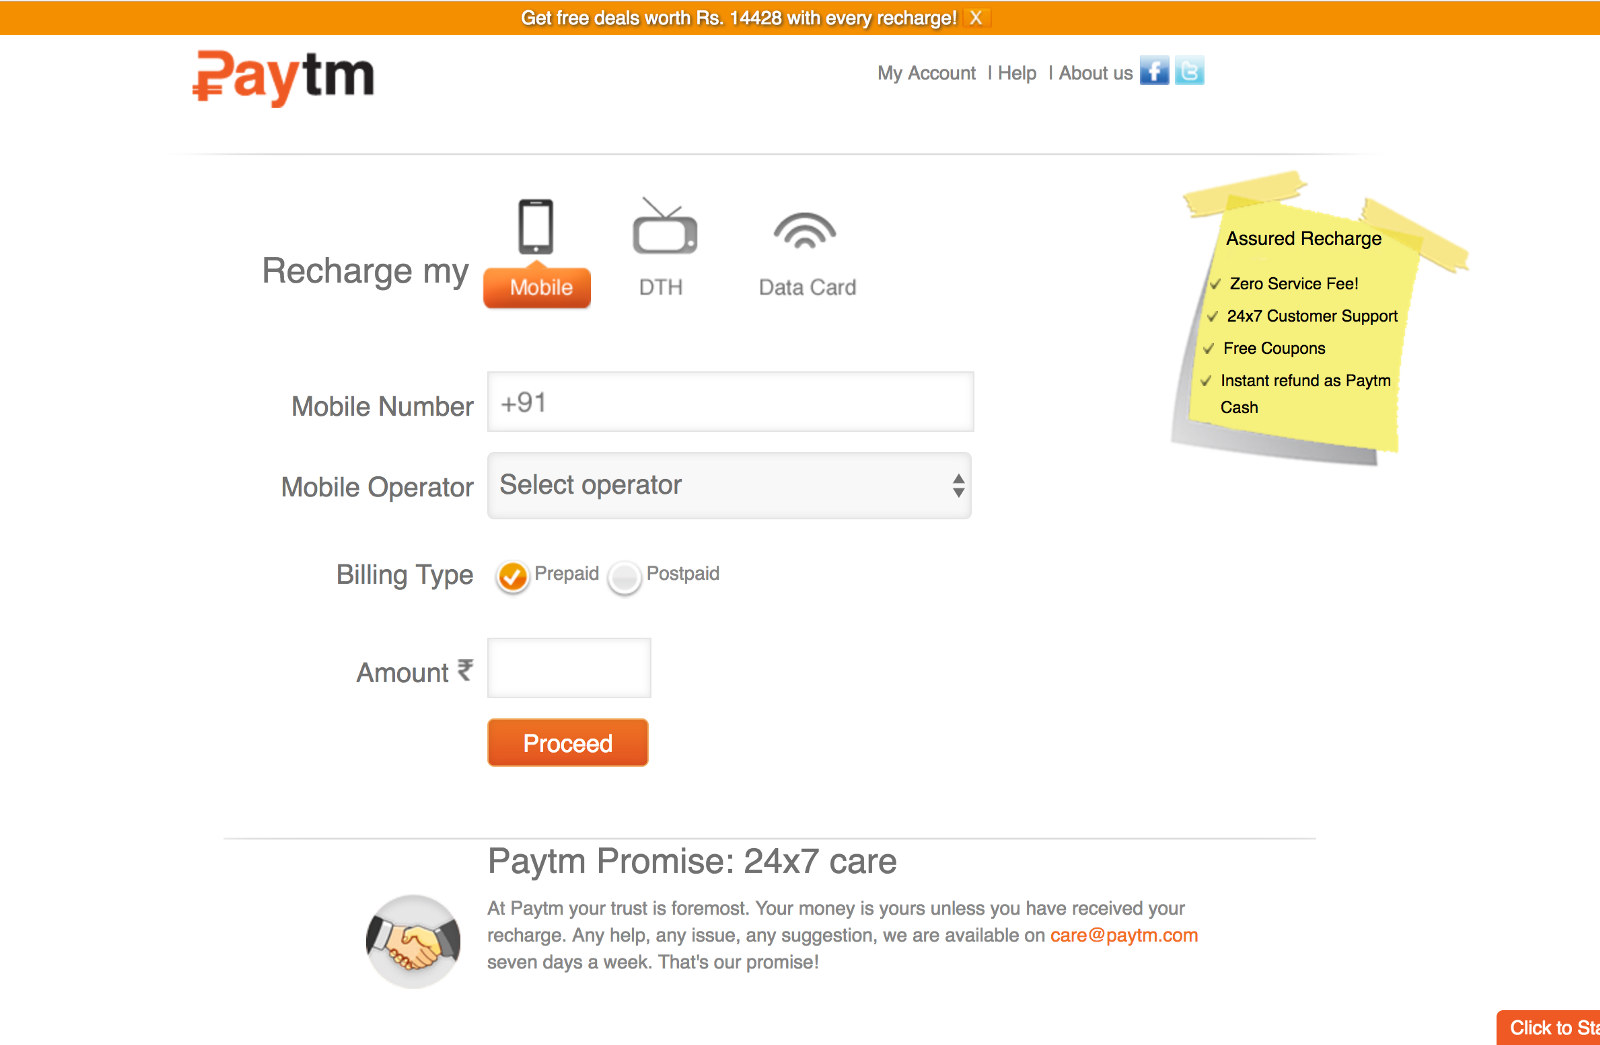 Paytm Homepage, Early 2012